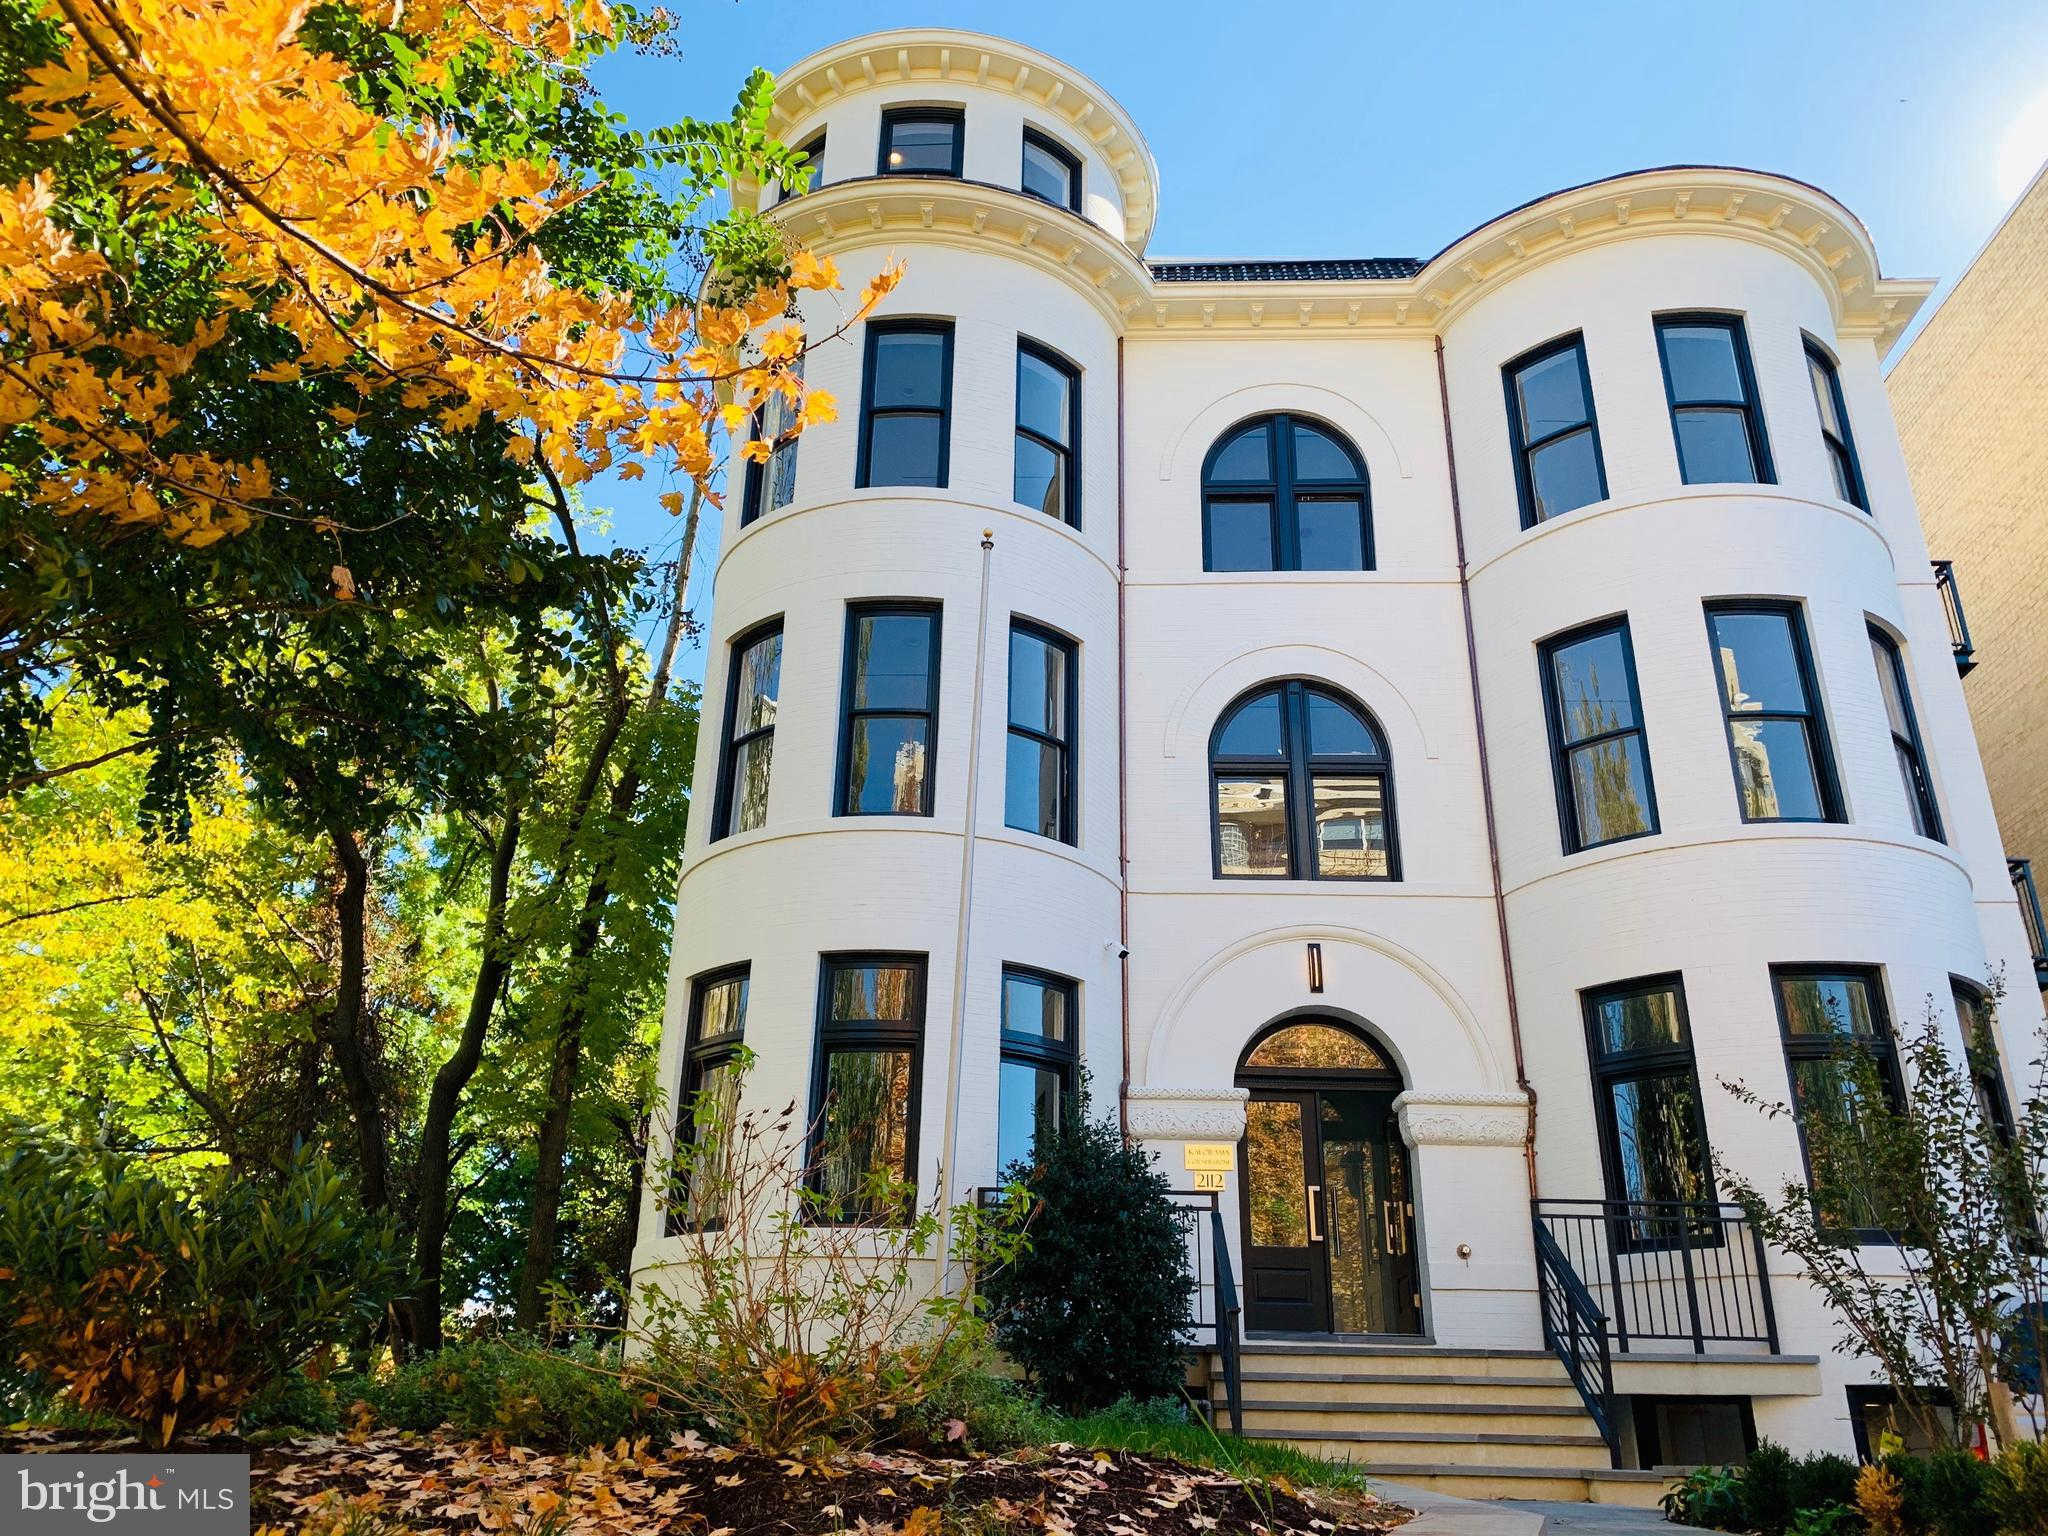 Another Property Rented - 2112 Wyoming Avenue NW #4, Washington, DC 20008